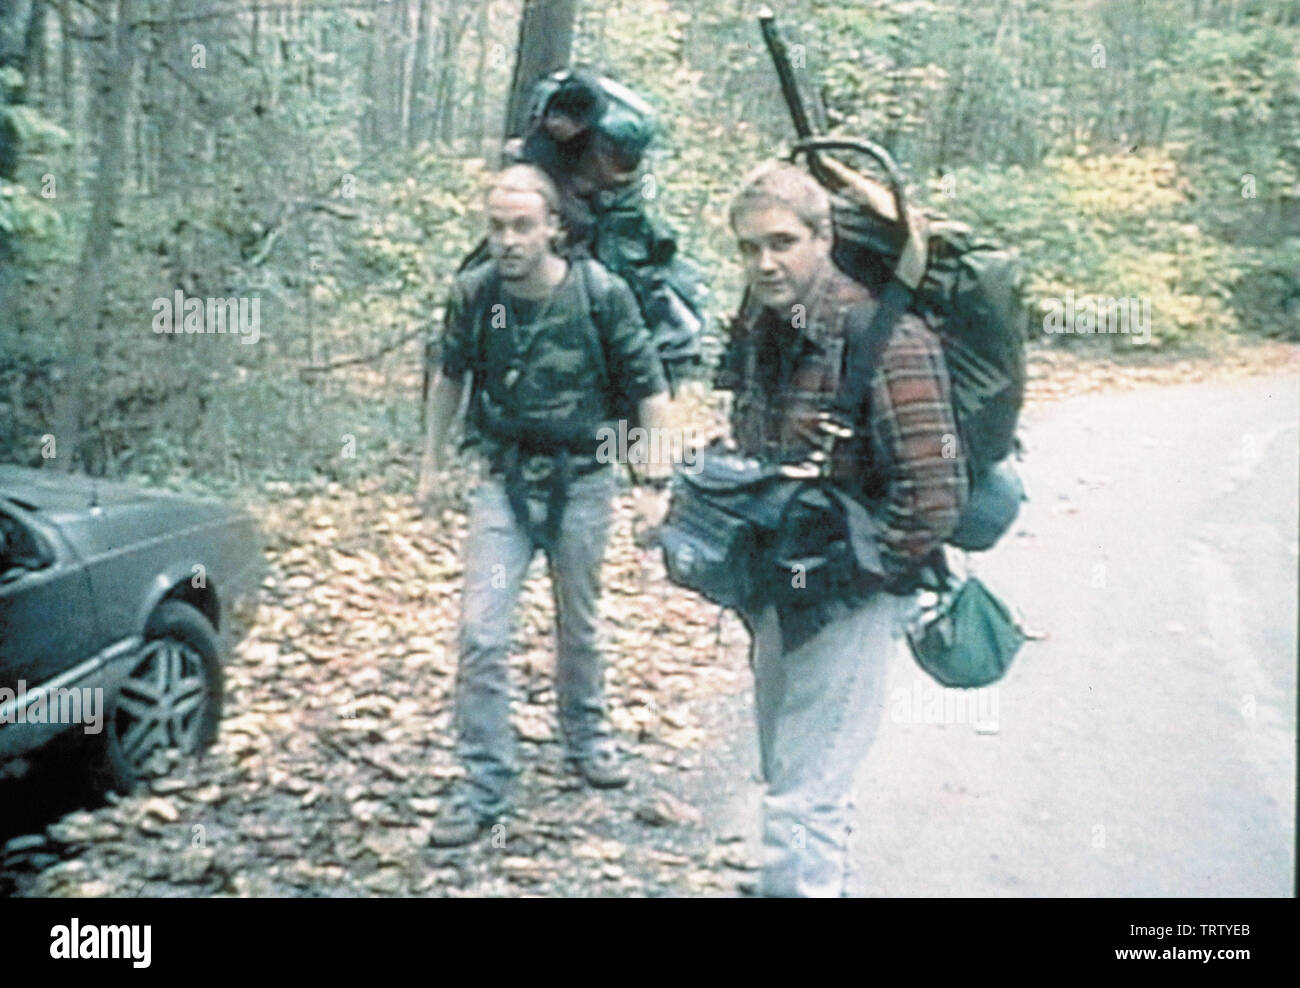 THE BLAIR WITCH PROJECT (1999). Copyright: Editorial use only. No merchandising or book covers. This is a publicly distributed handout. Access rights only, no license of copyright provided. Only to be reproduced in conjunction with promotion of this film. Credit: HAXAN FILMS / Album - Stock Image